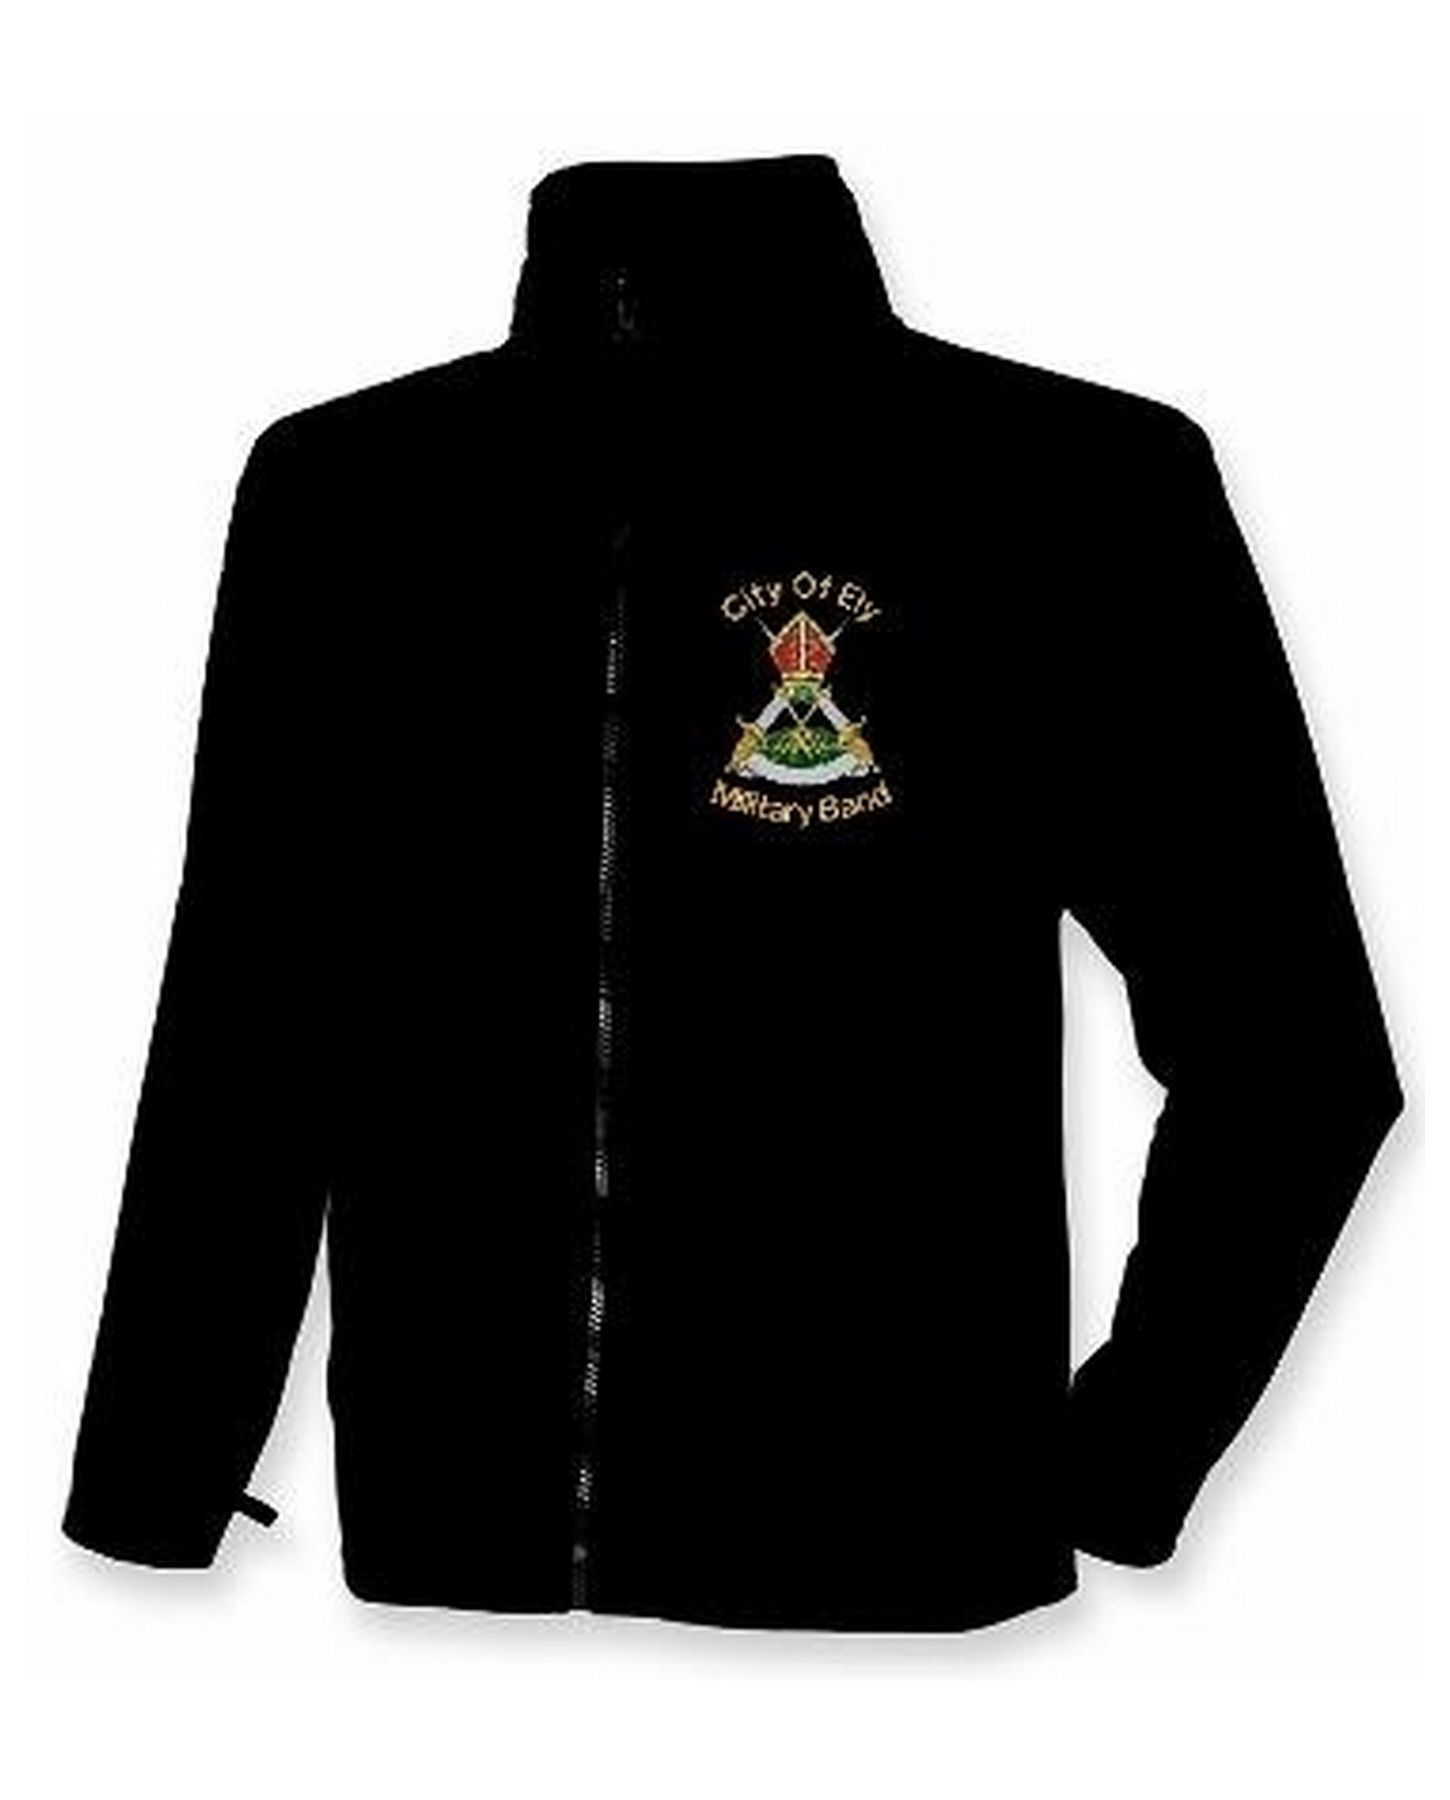 Ely Military Band – Henbury Fleece Unisex